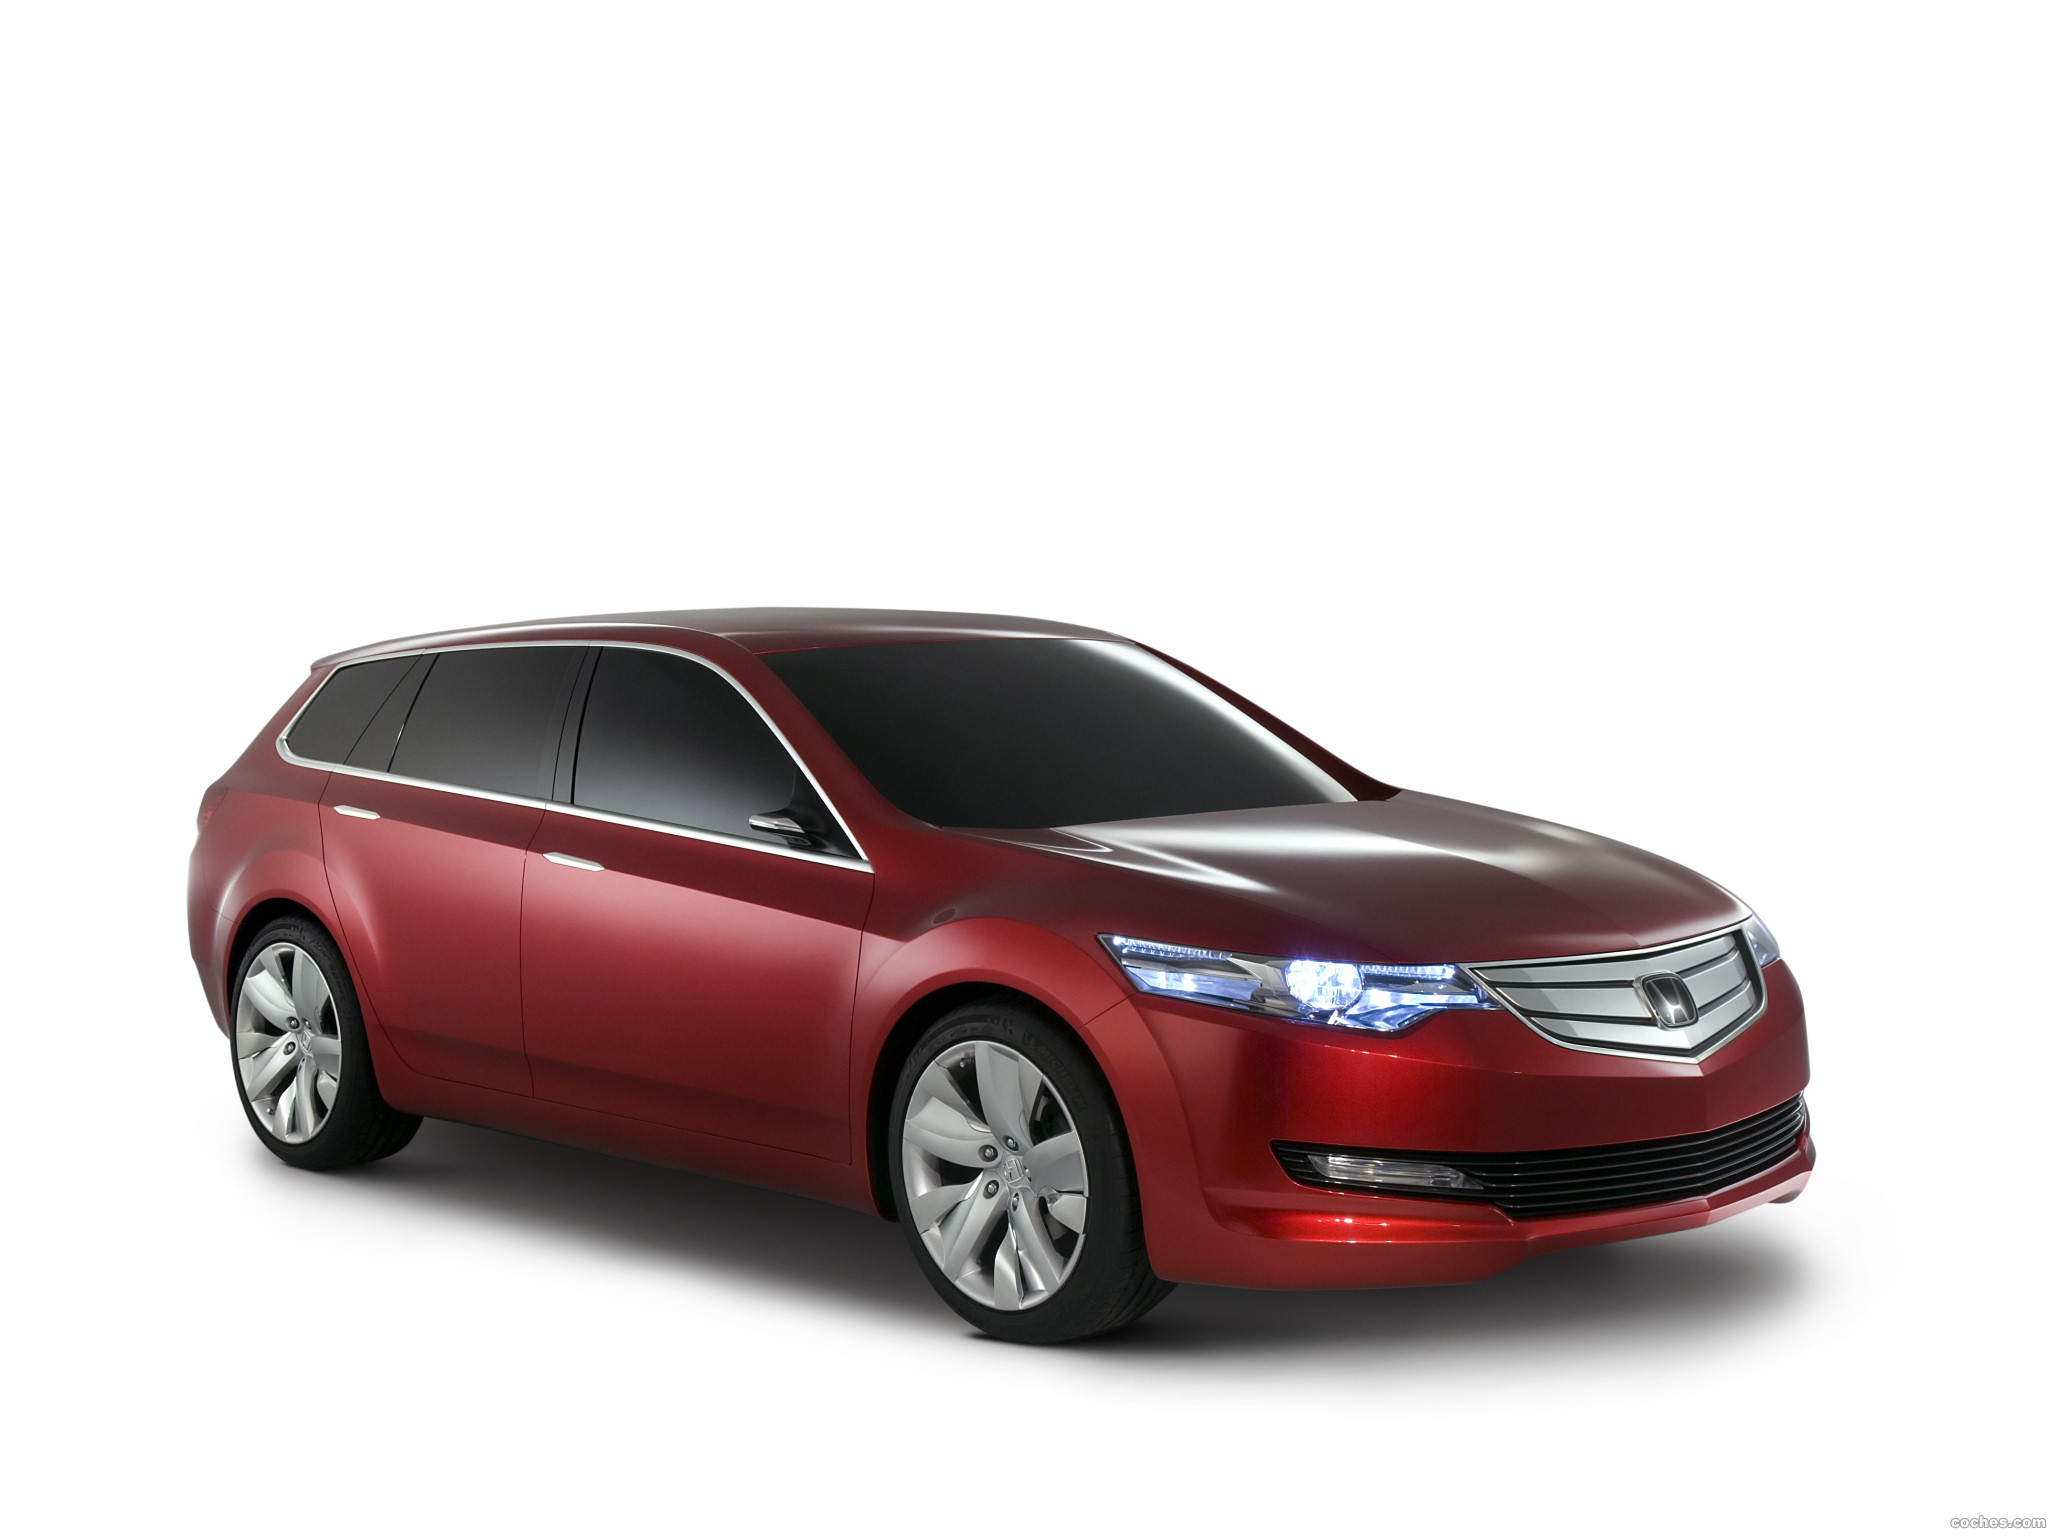 Foto 0 de Honda Accord Tourer Concept 2007